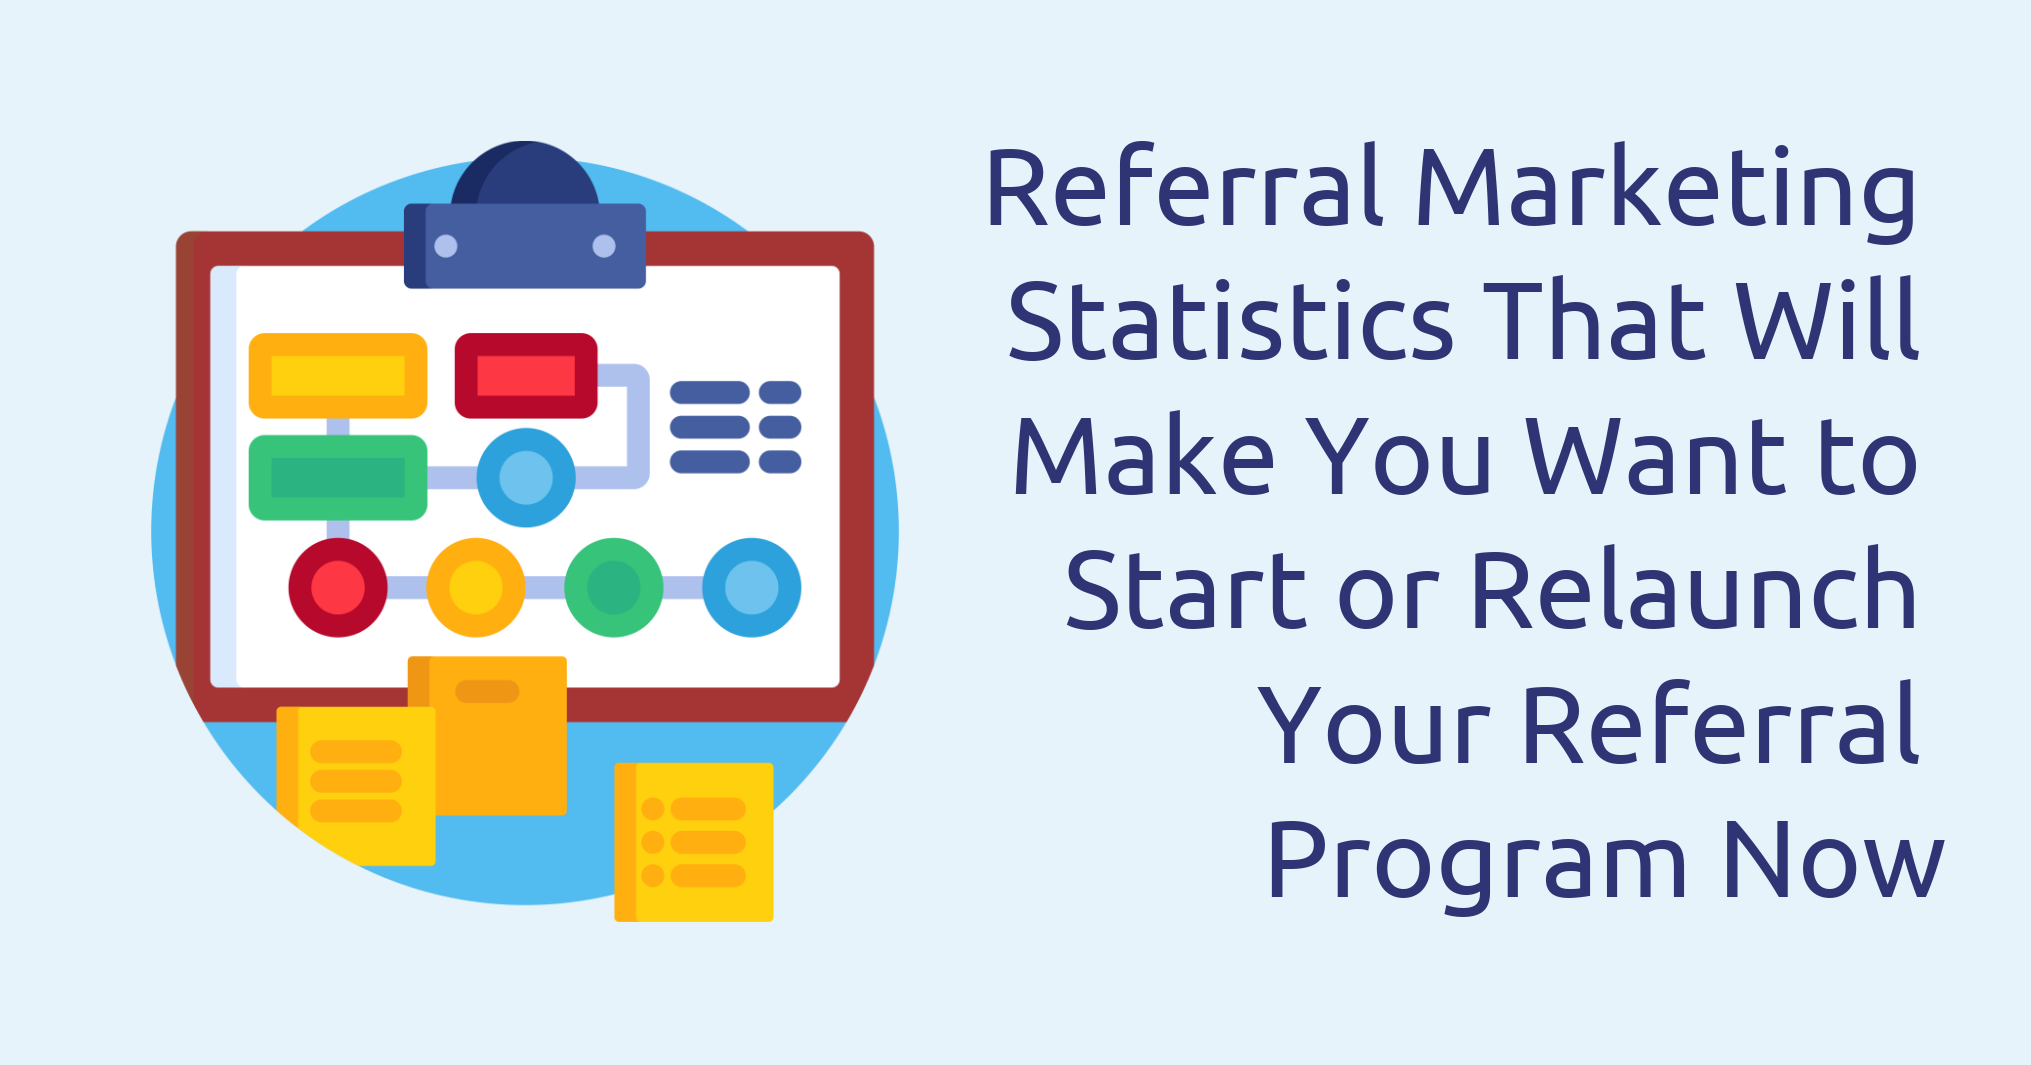 Referral Marketing Statistics